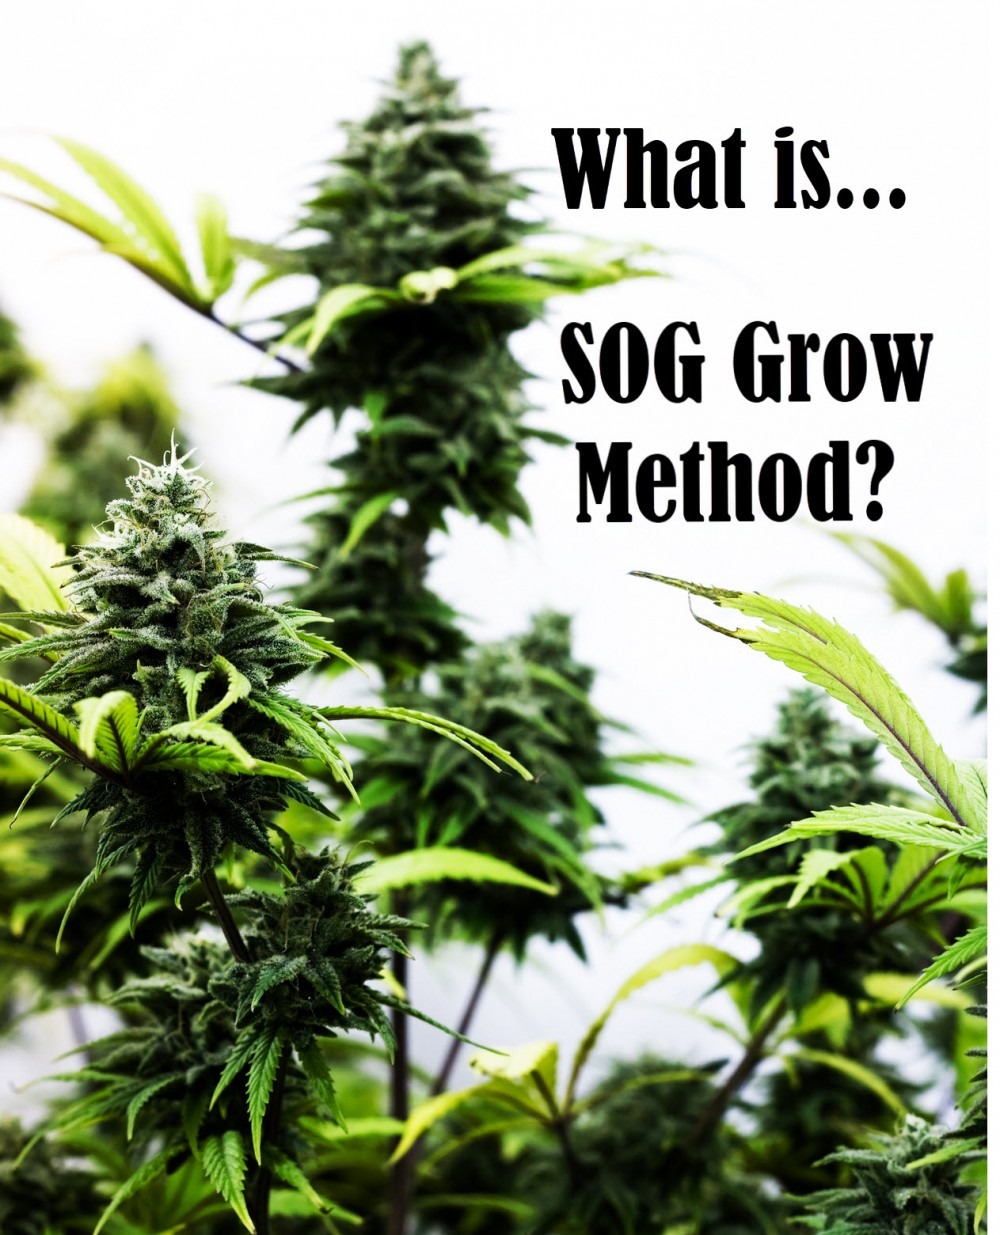 sogmethod - The Sea of Green (SOG) Growing Method - Better Yield or Just Hype?